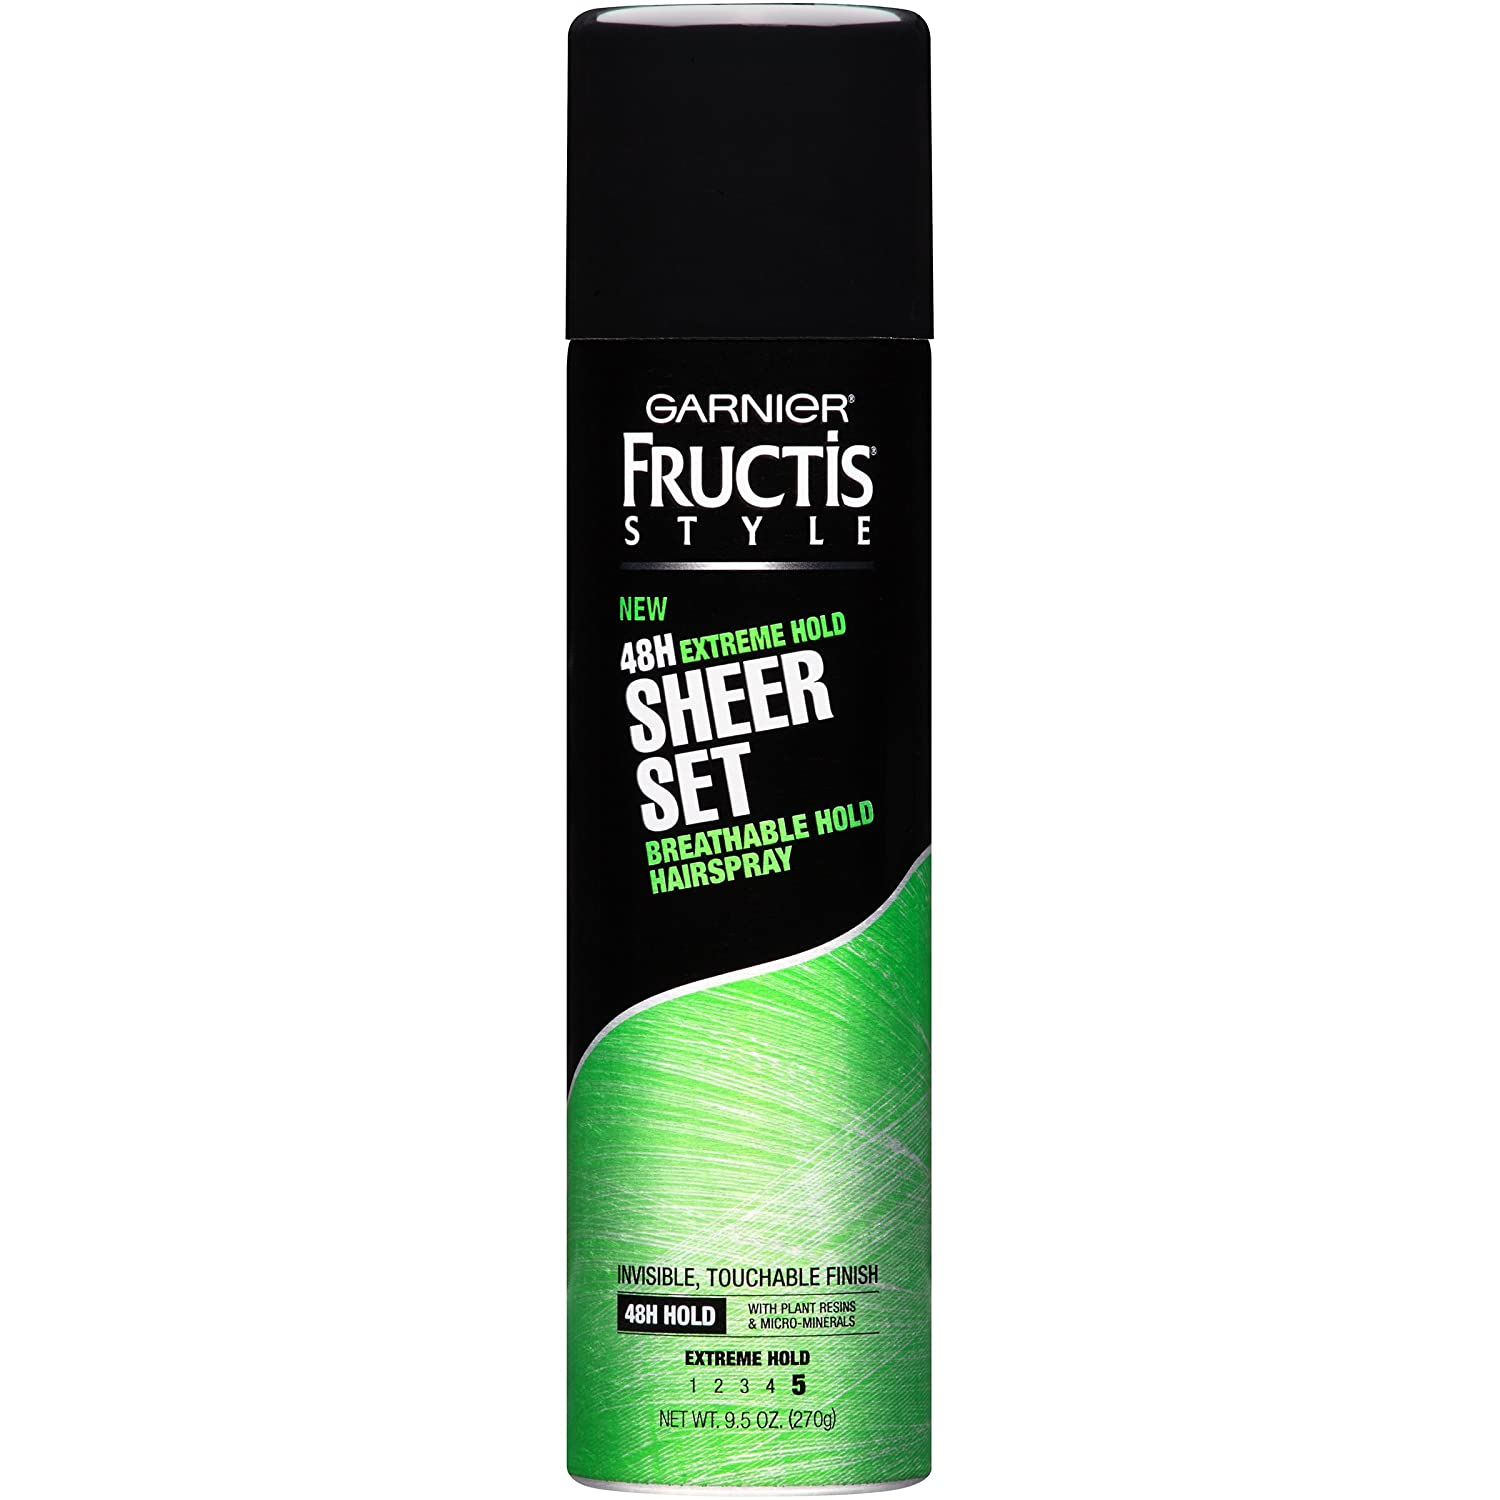 Garnier Fructis Style Sheer Set Extreme Hold Breathable Hairspray, All Hair Types, 9.5 oz.(Packaging May Vary)